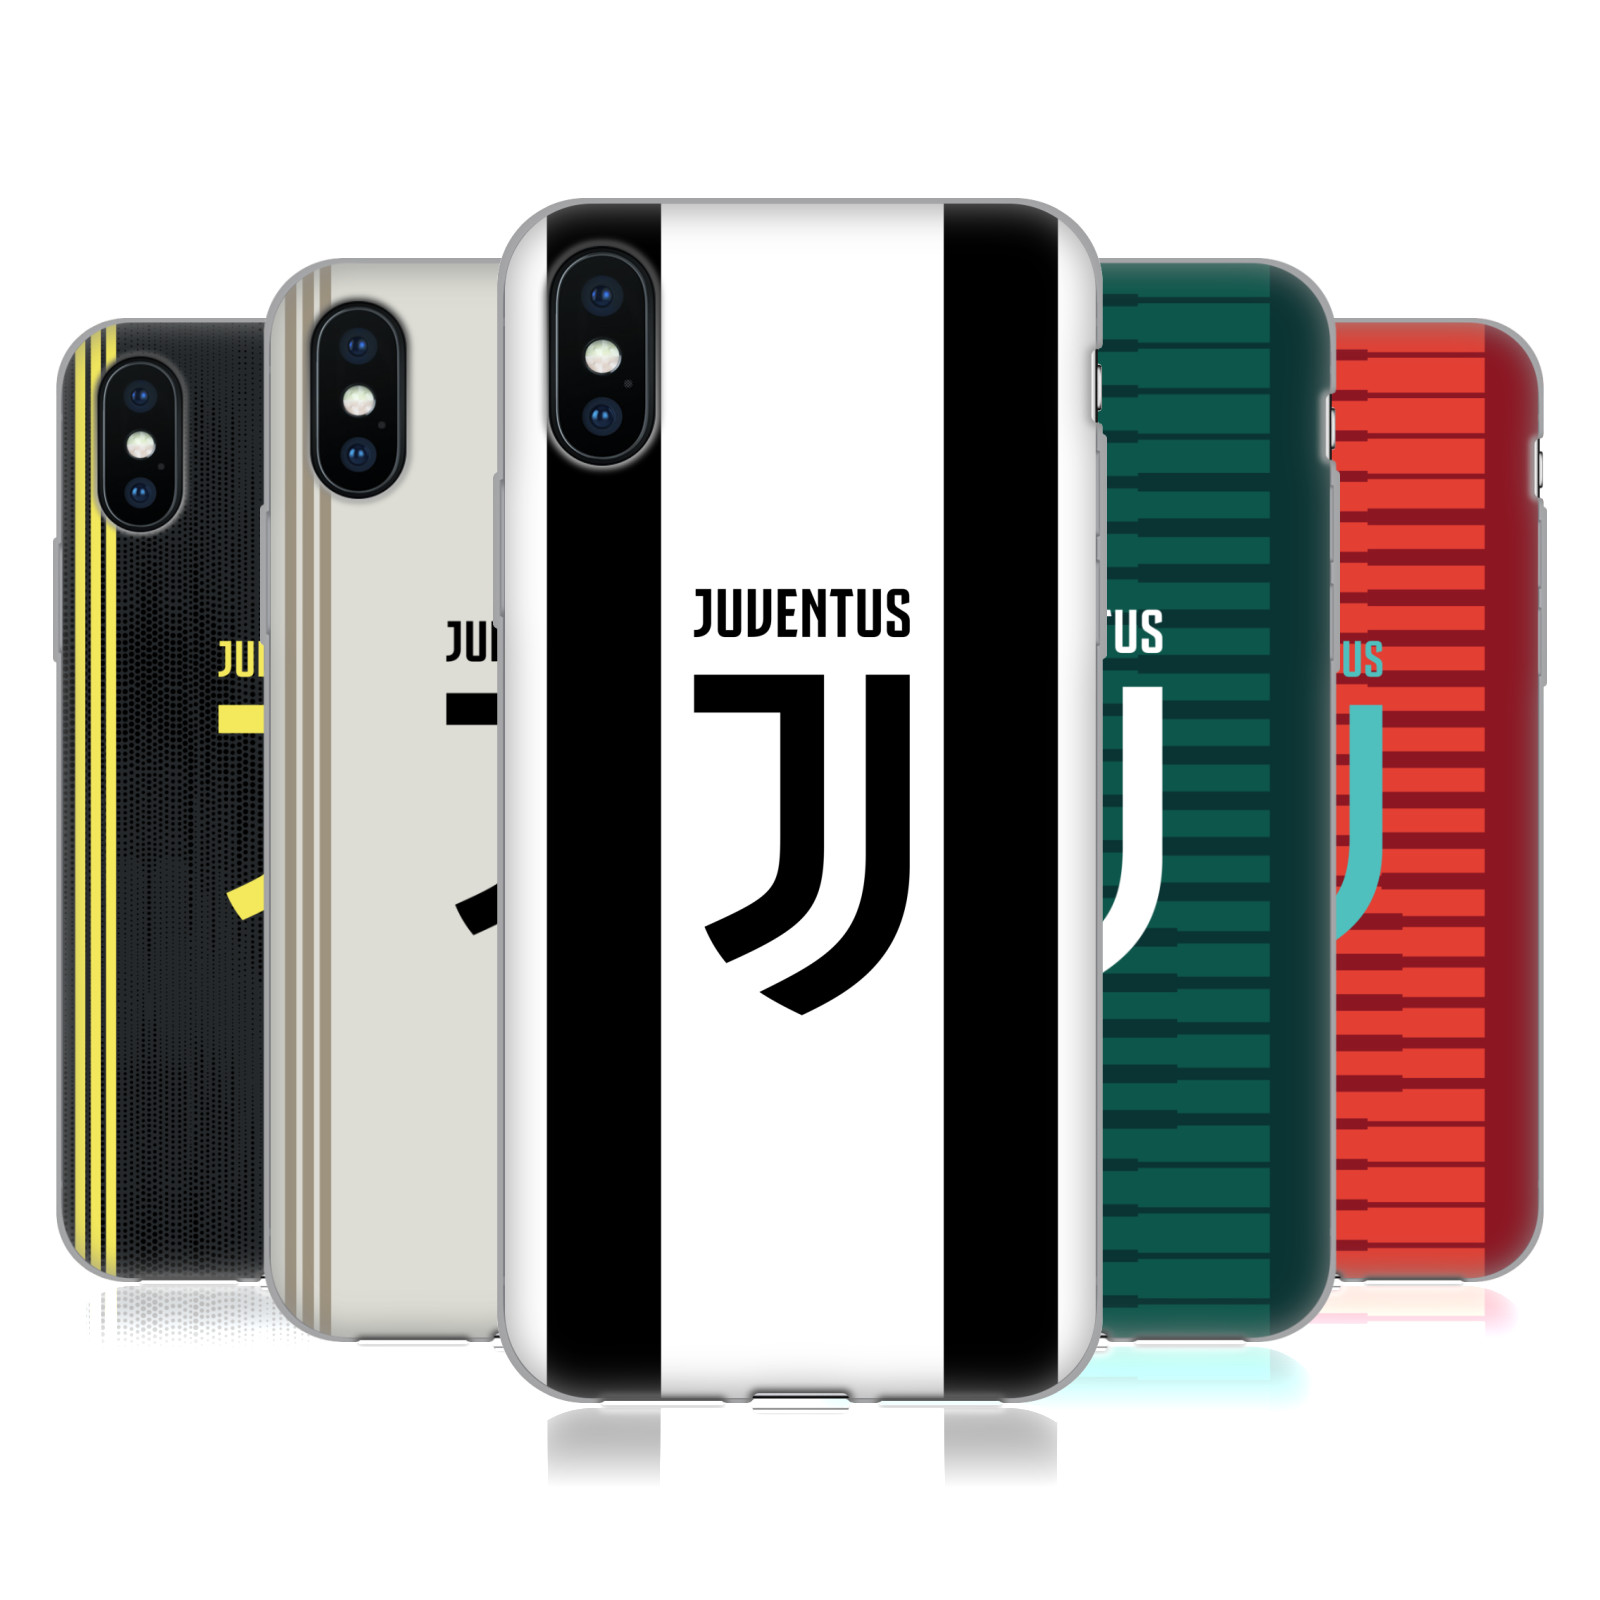 Juventus Football Club 2018/19 Race Kit